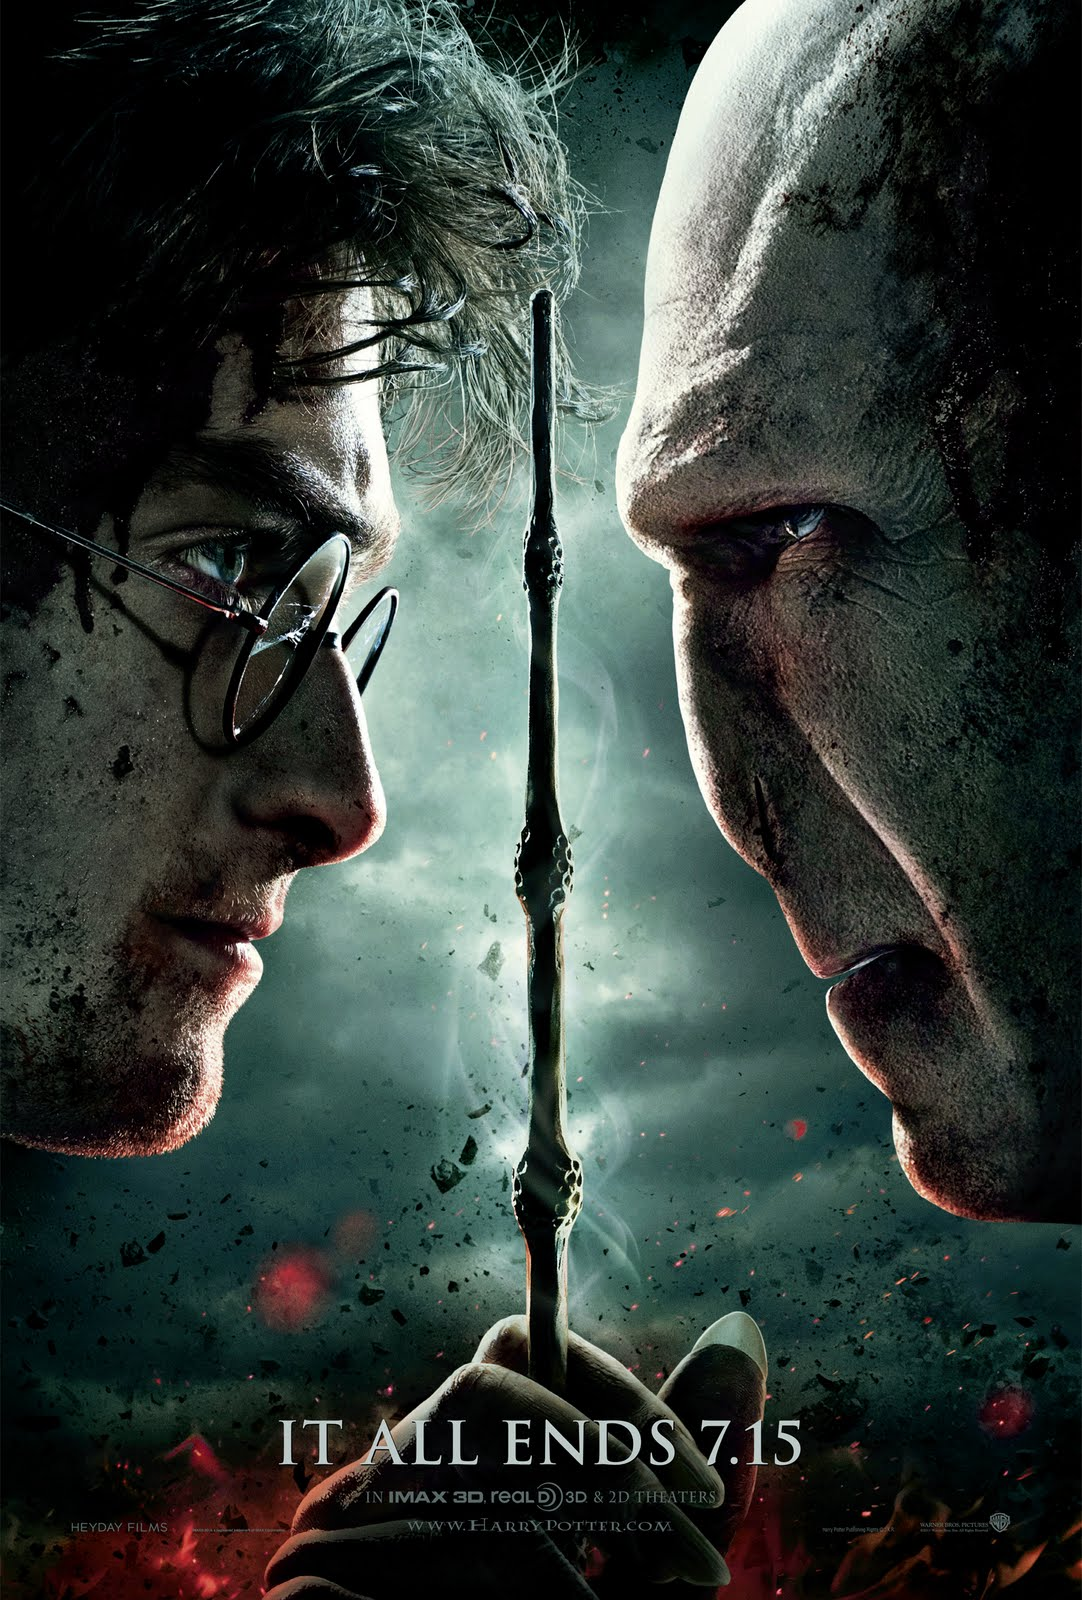 Harry Potter and the Deathly Hallows Part 2 : Poster